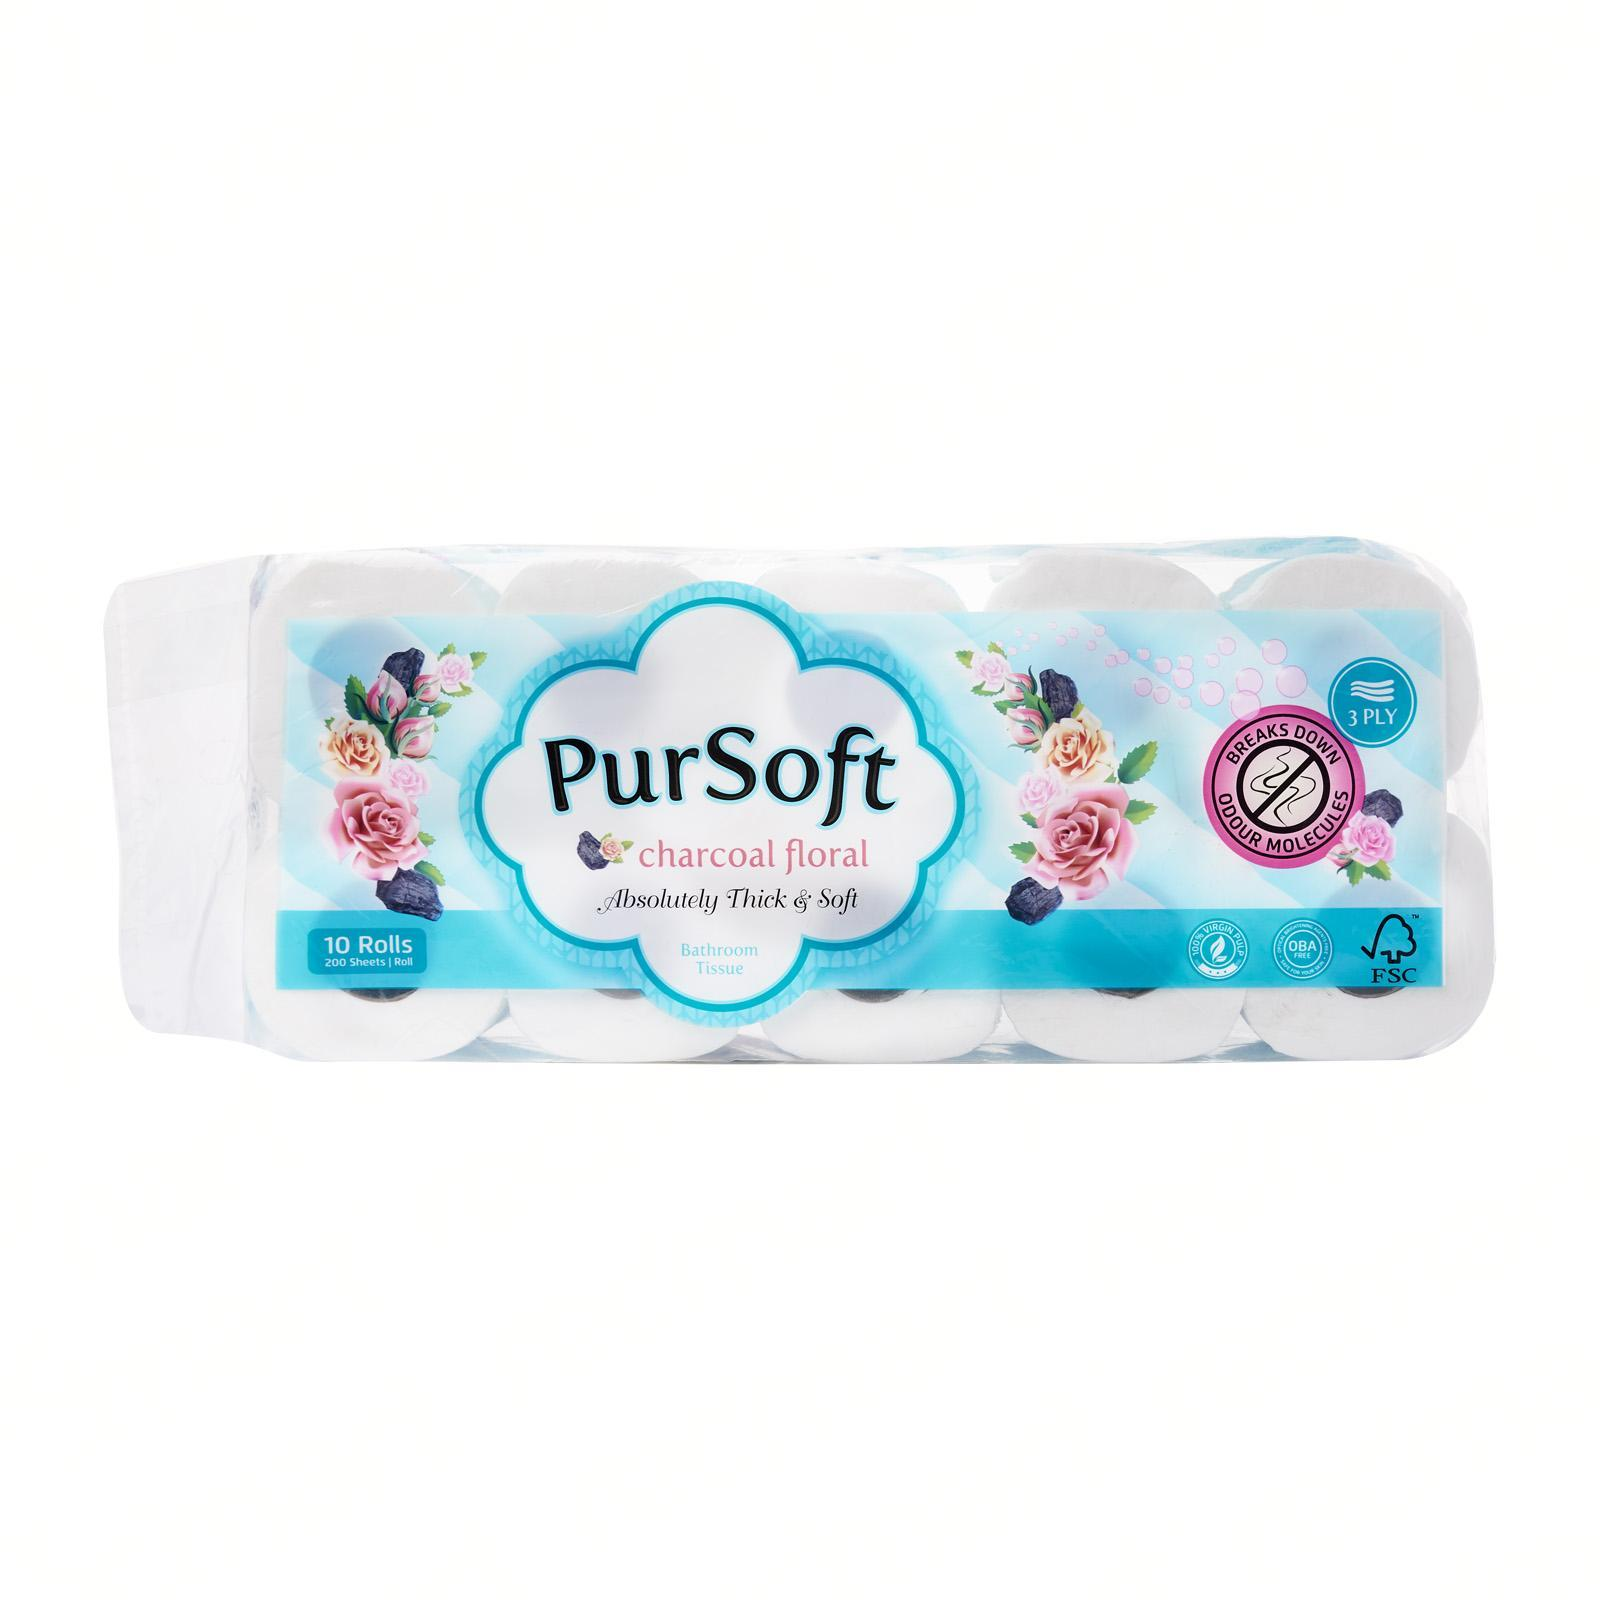 PurSoft Charcoal Floral 3-Ply Toilet Tissue - 10 Rolls